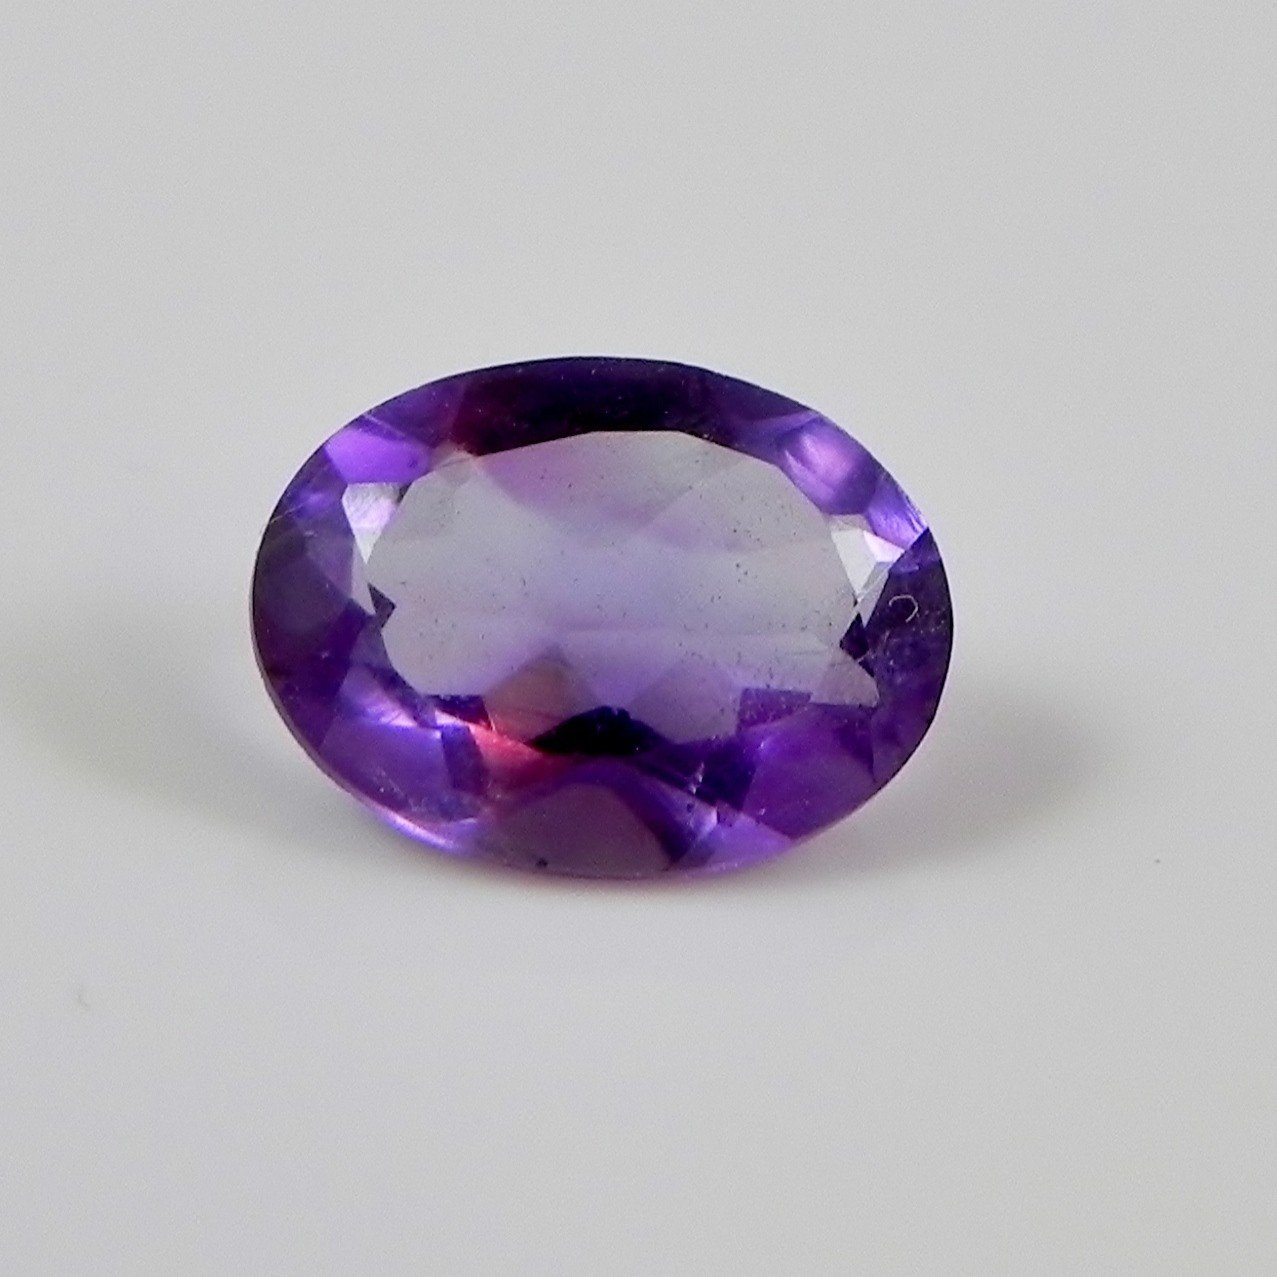 Certified Natural Amethyst AAA Quality 8x6 mm Faceted Oval 5 pcs lot loose gemstone